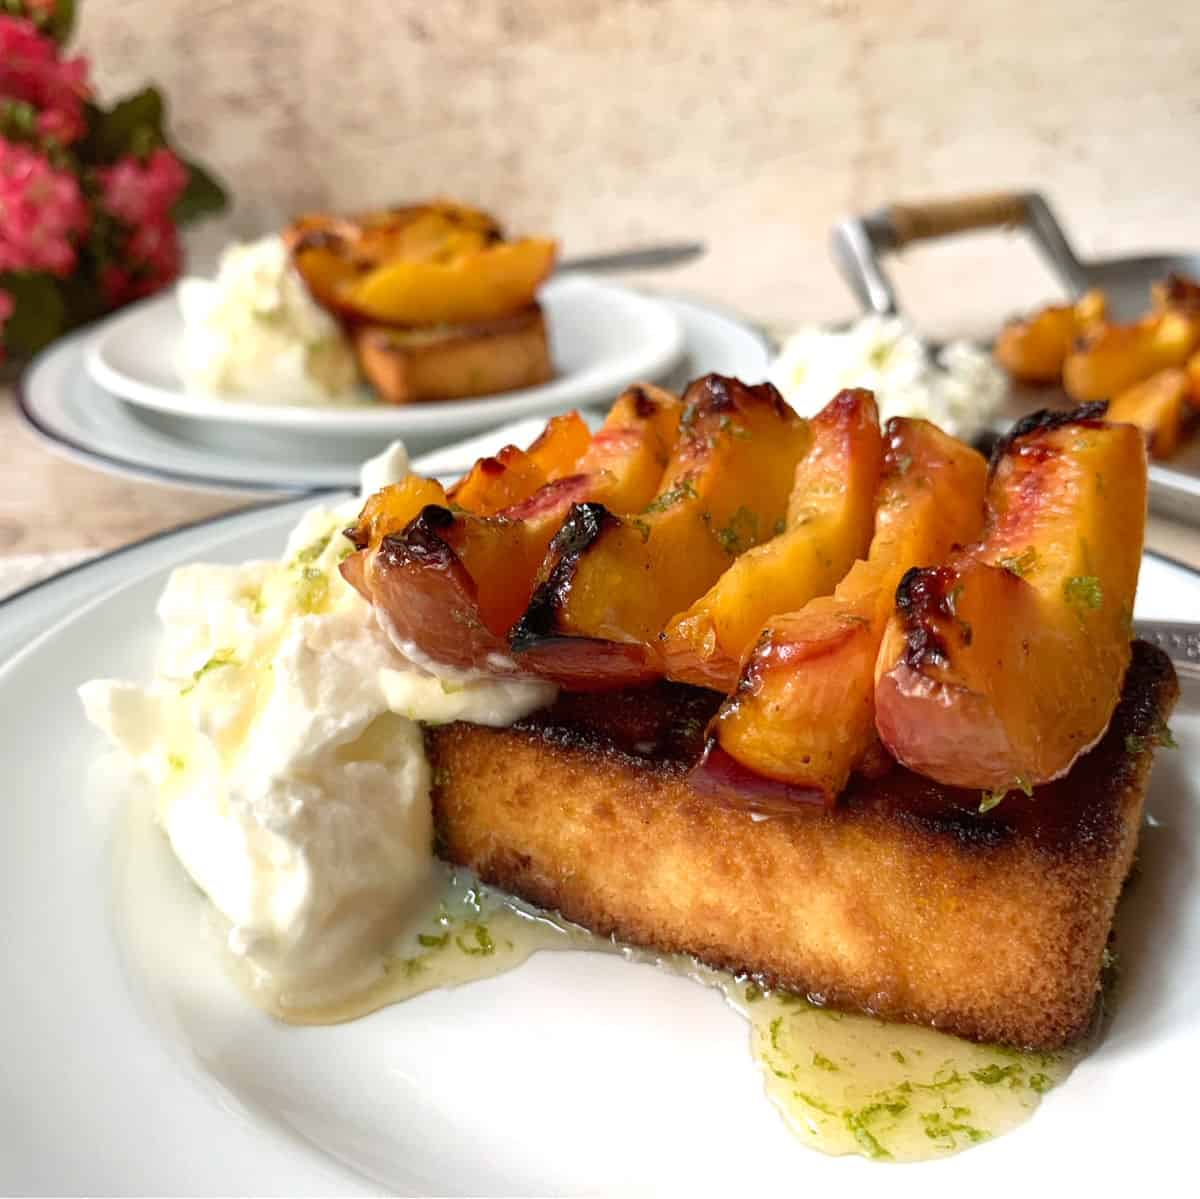 Grilled peaches on top of grilled poundcake on a white plate.